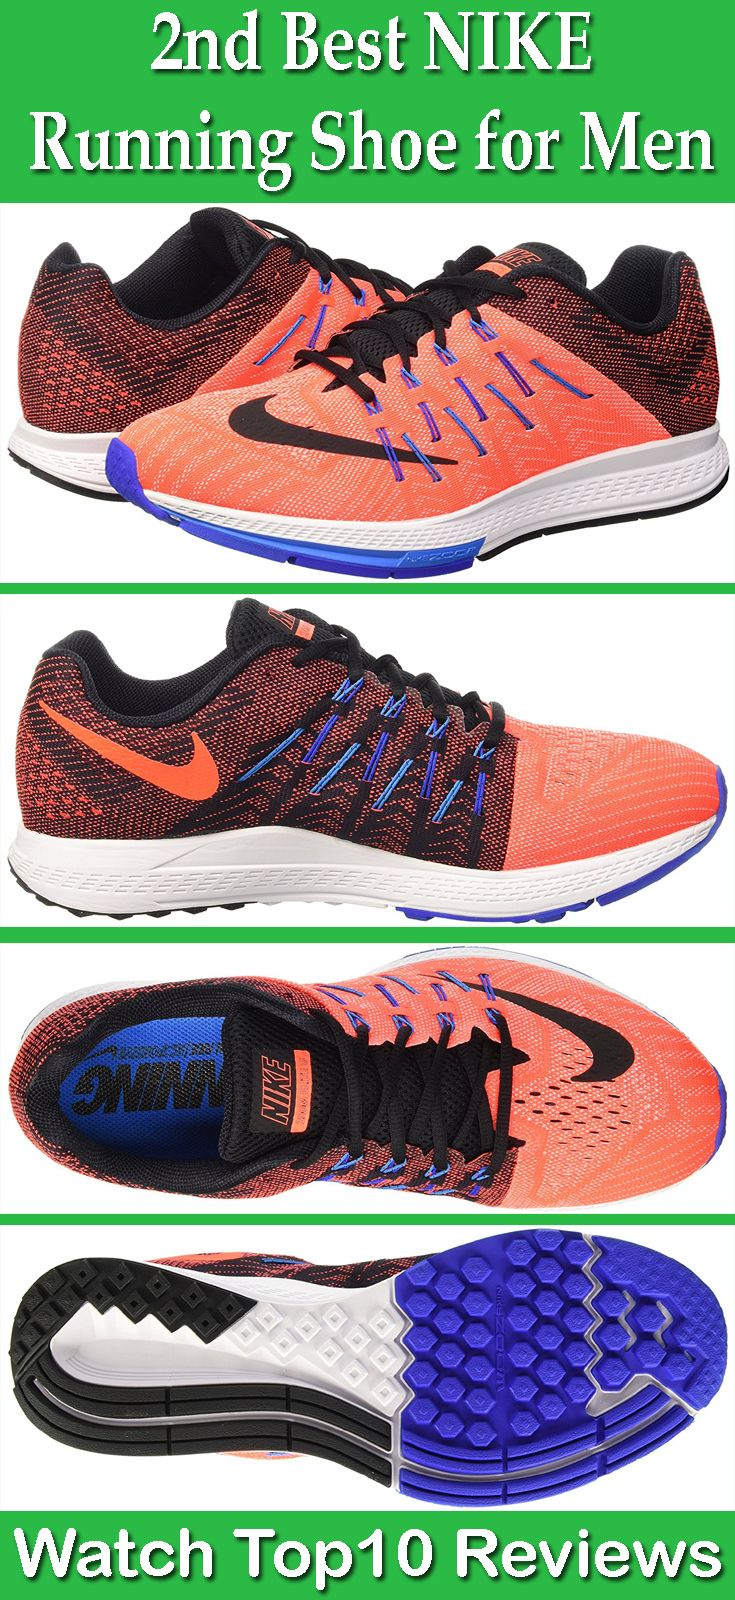 Nike Air Zoom Elite 8 Running Shoe: Nike Air Zoom Elite 8 Mens is a  lightweight and dynamic running shoe features slightly padded tongue and  collar, ...